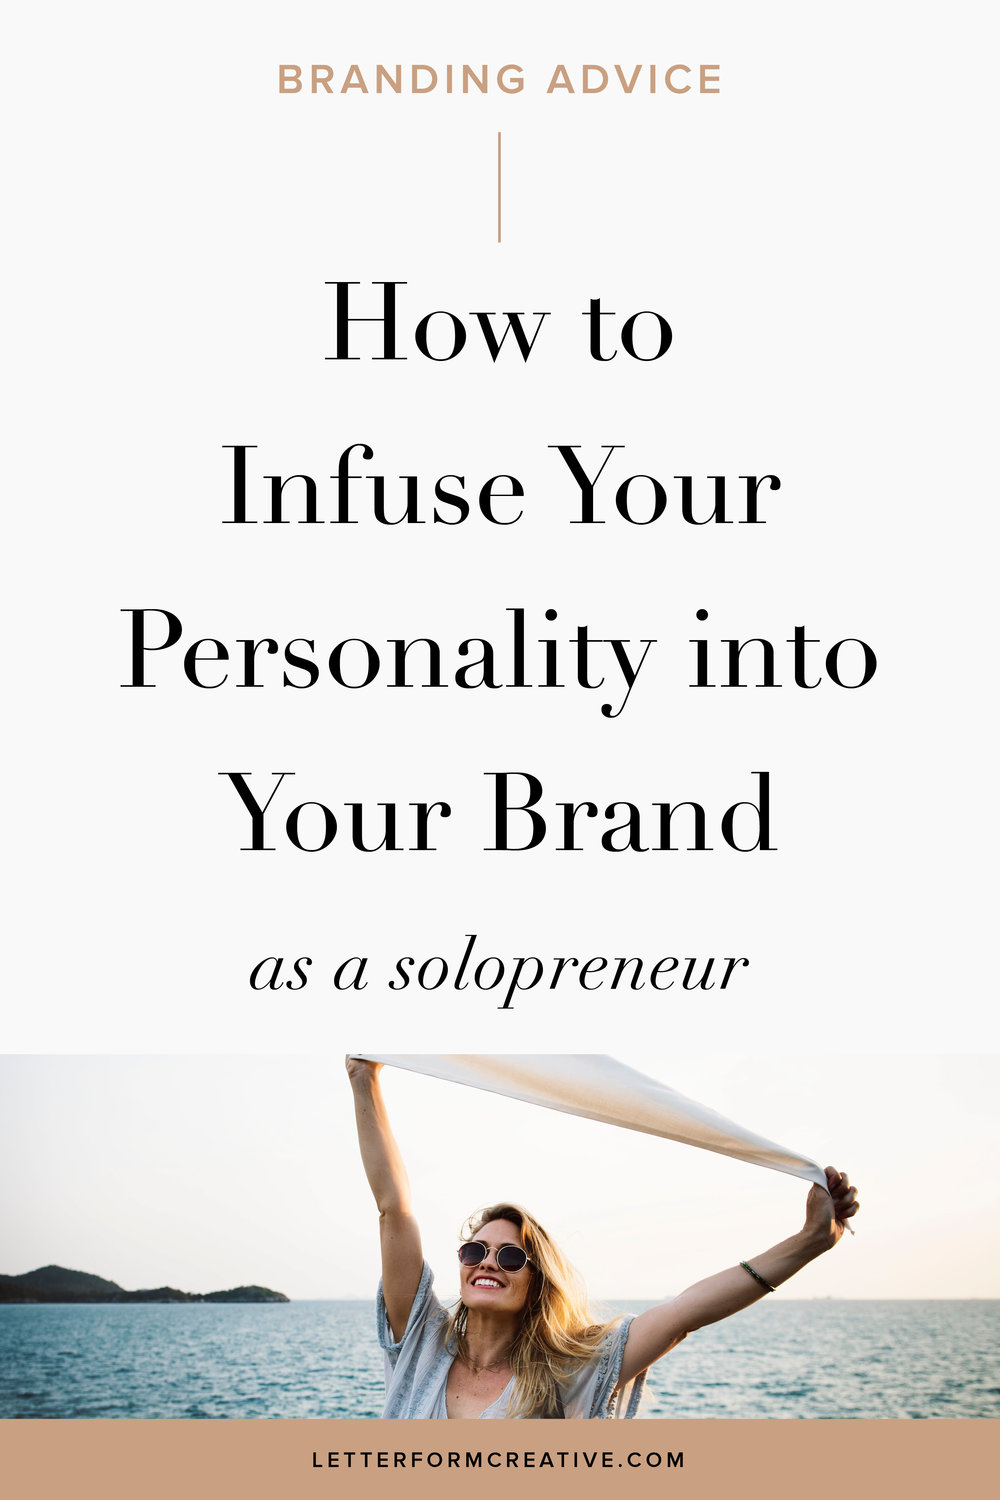 Are you a solopreneur, small business owner, or entrepreneur? Here is some great advice on how to add some of your personality into your business. There are tips for adding your personality into your brand identity, your headshot, your copy, your about page, and your email newsletters. Click through for some actionable ideas you can easily implement in your small business right now!